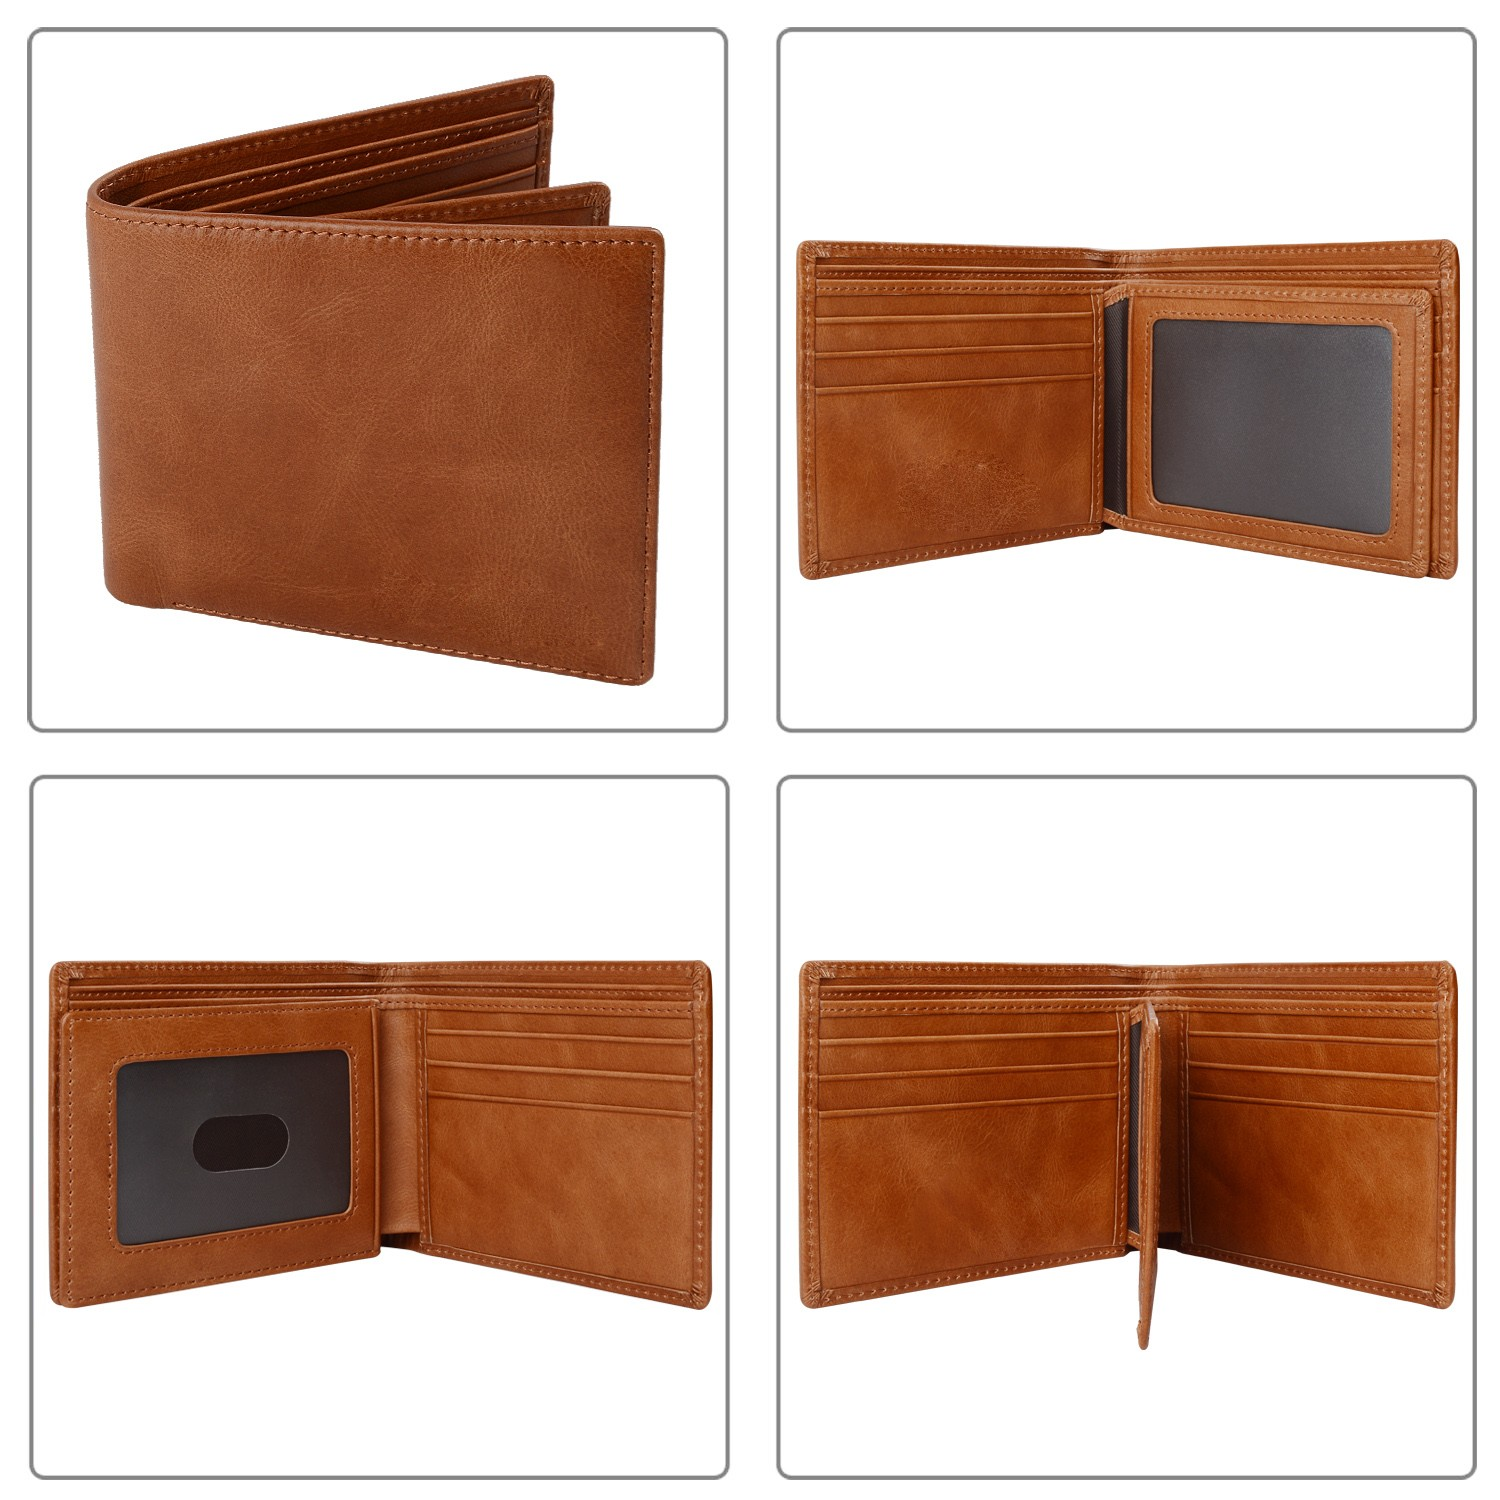 AIVI custom leather wallets for sale for travel-9